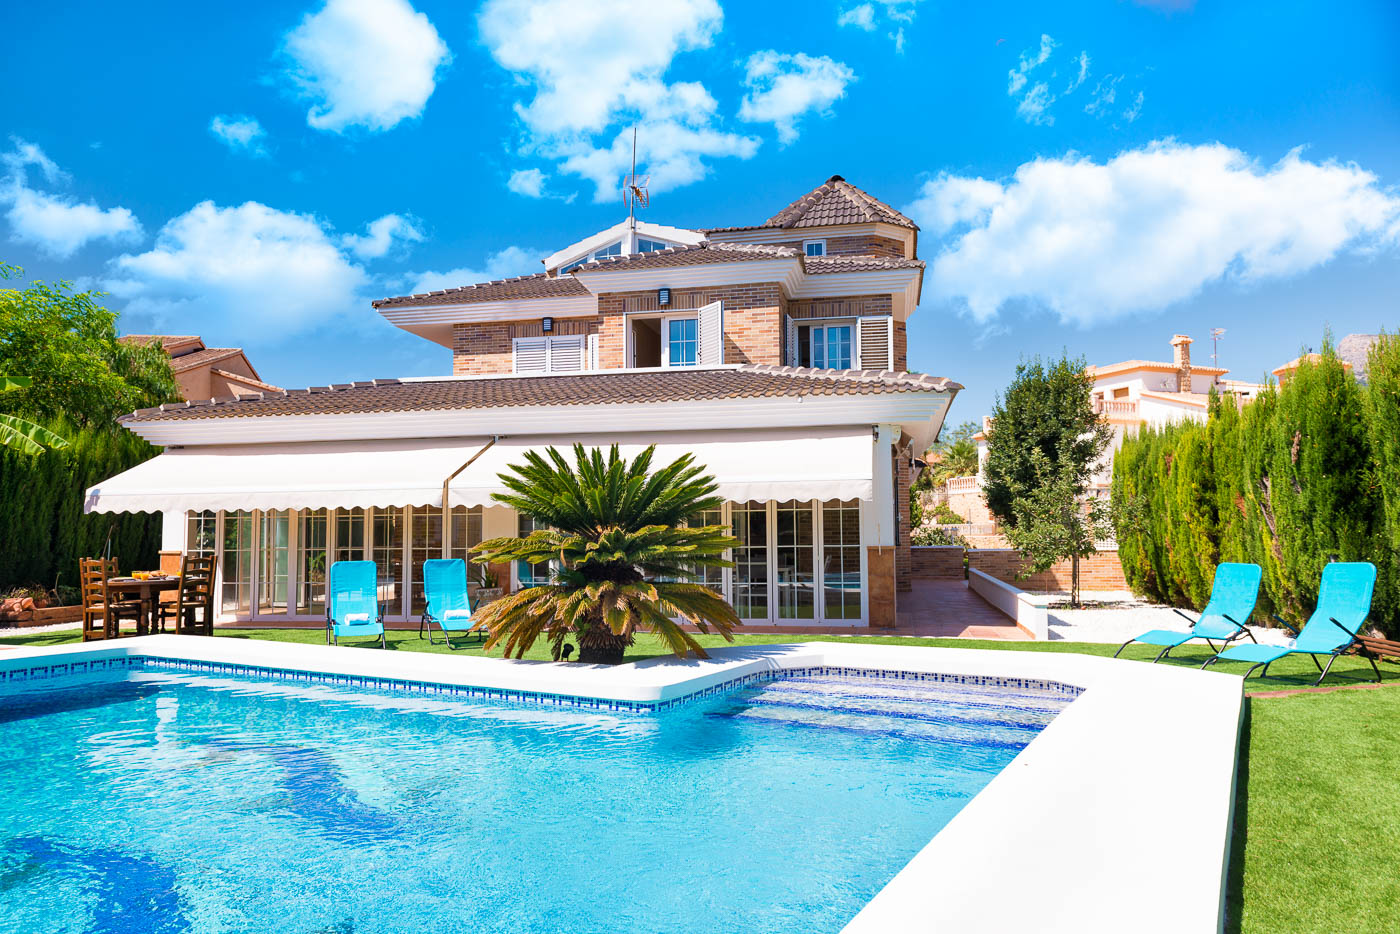 villa photographer costa blanca alicante